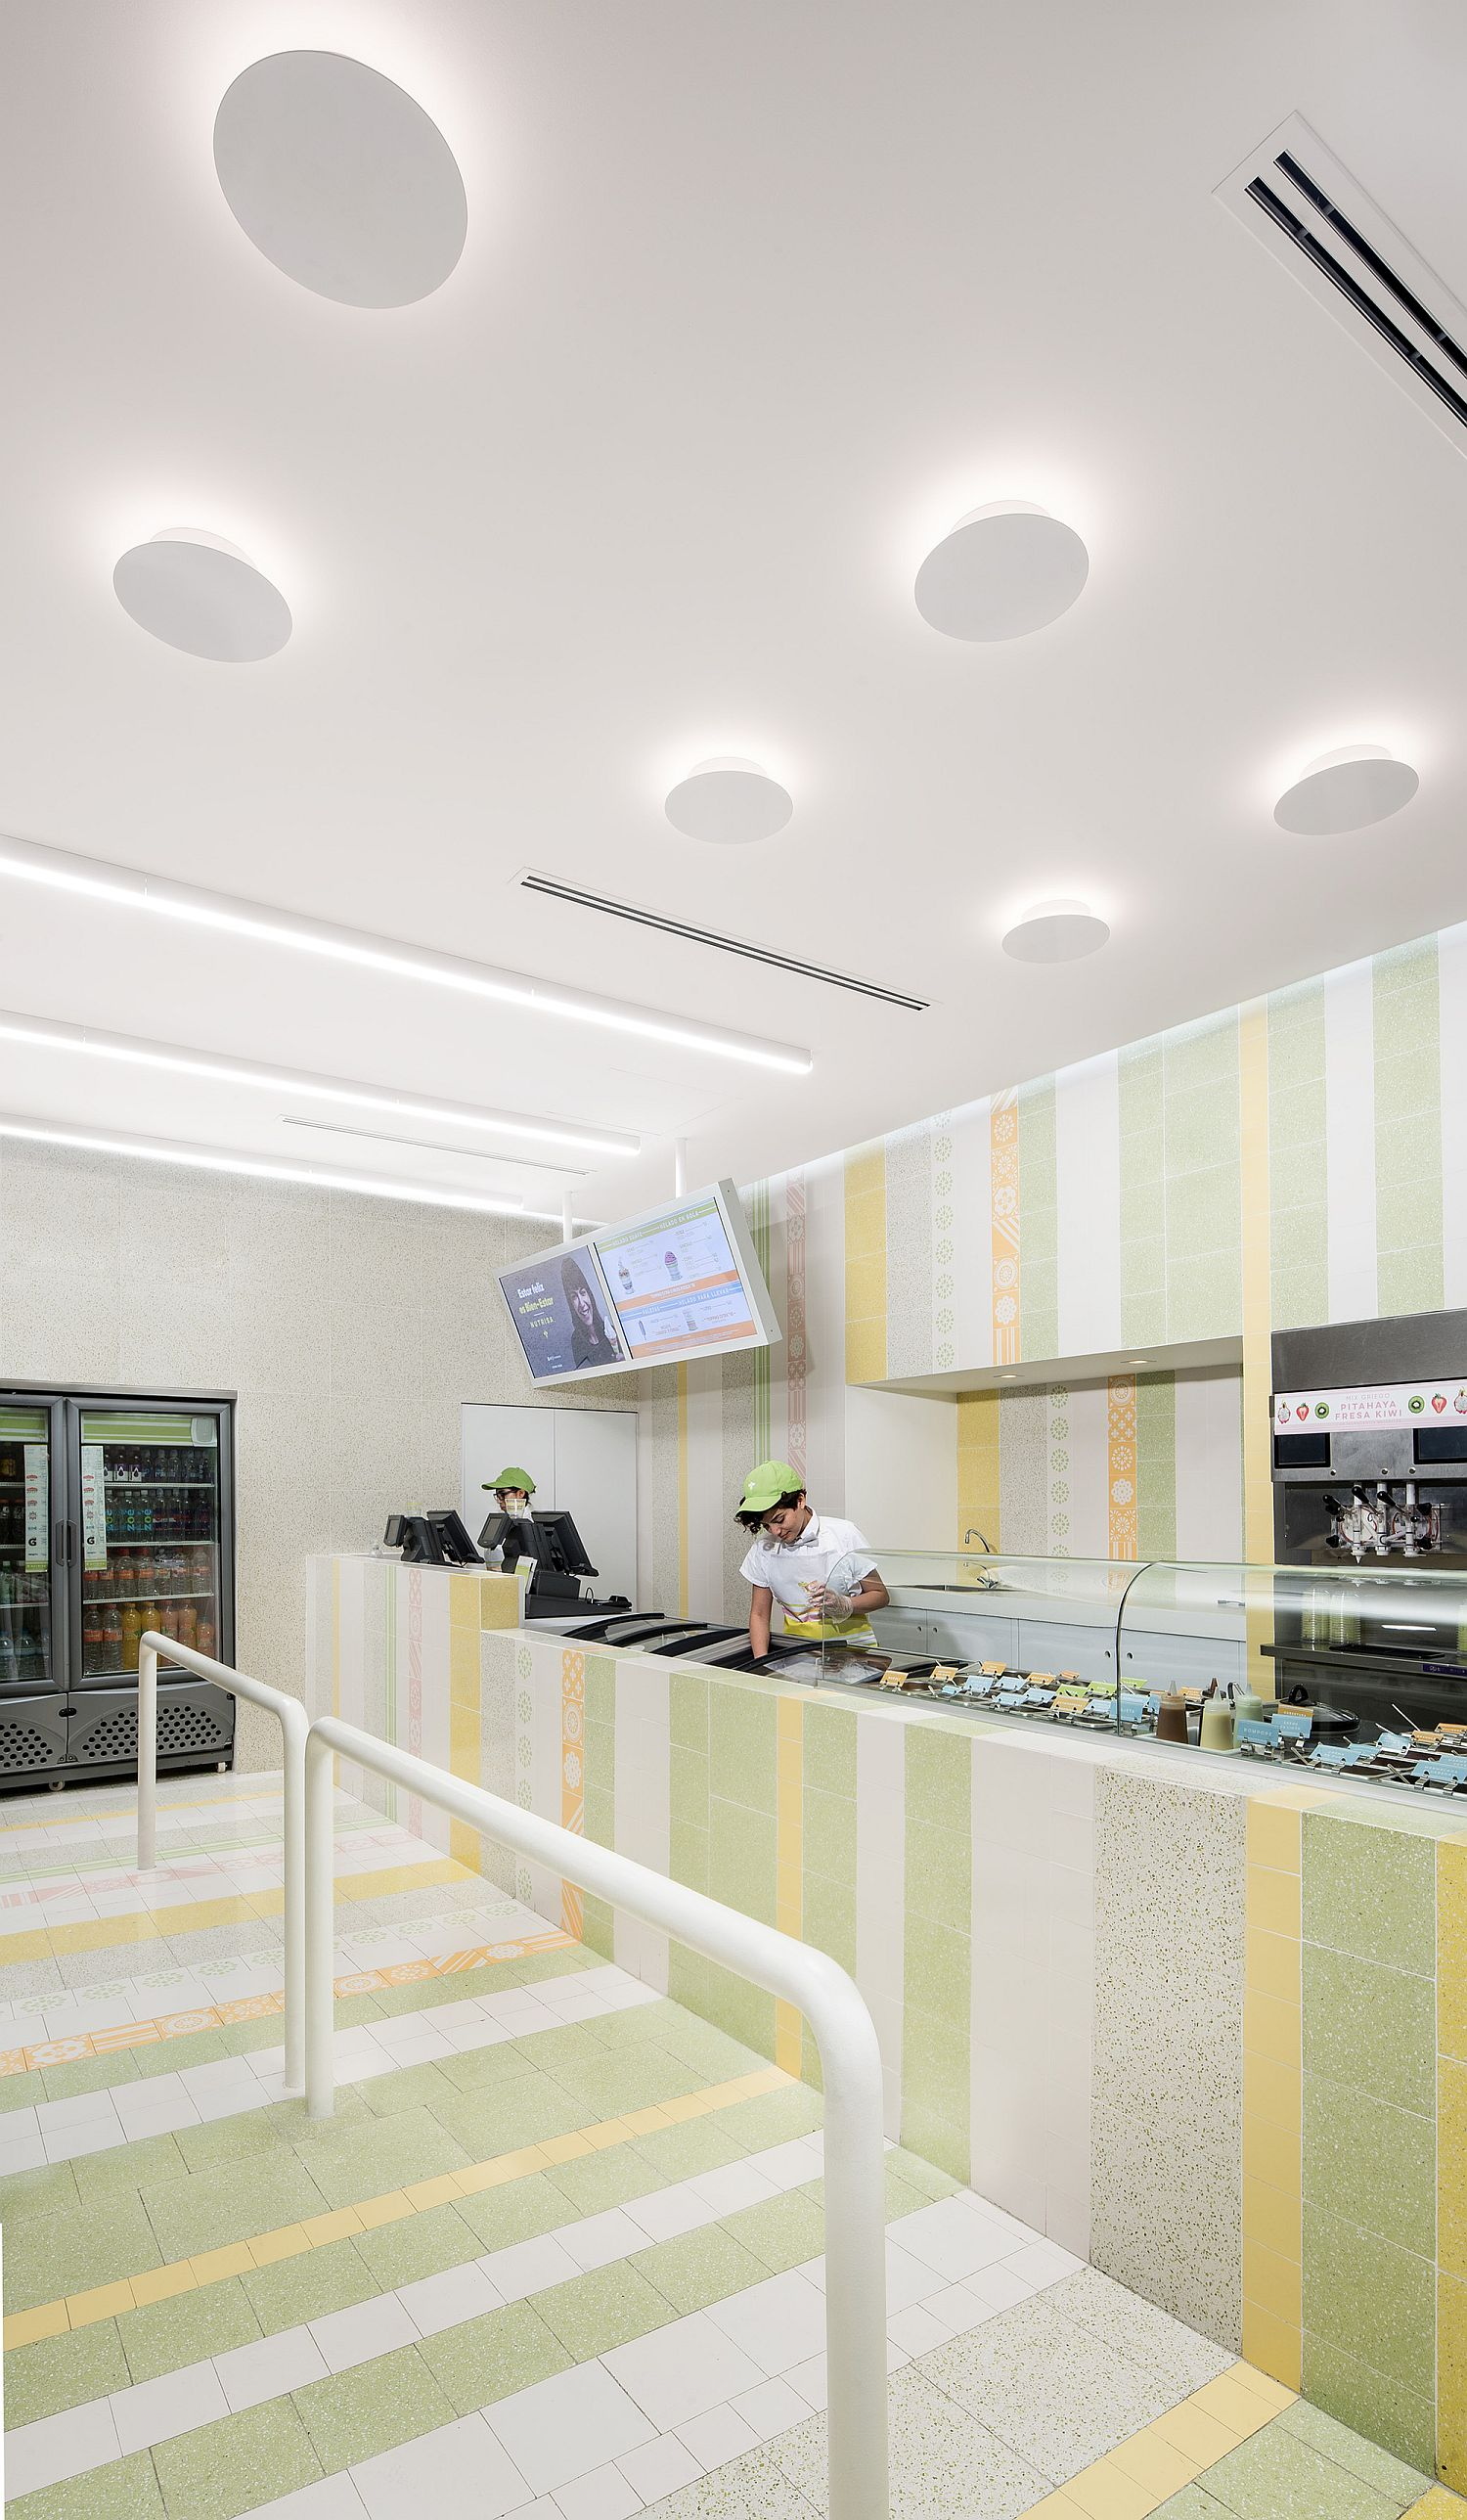 White along with light hues makes an impact inside the ice cream shop